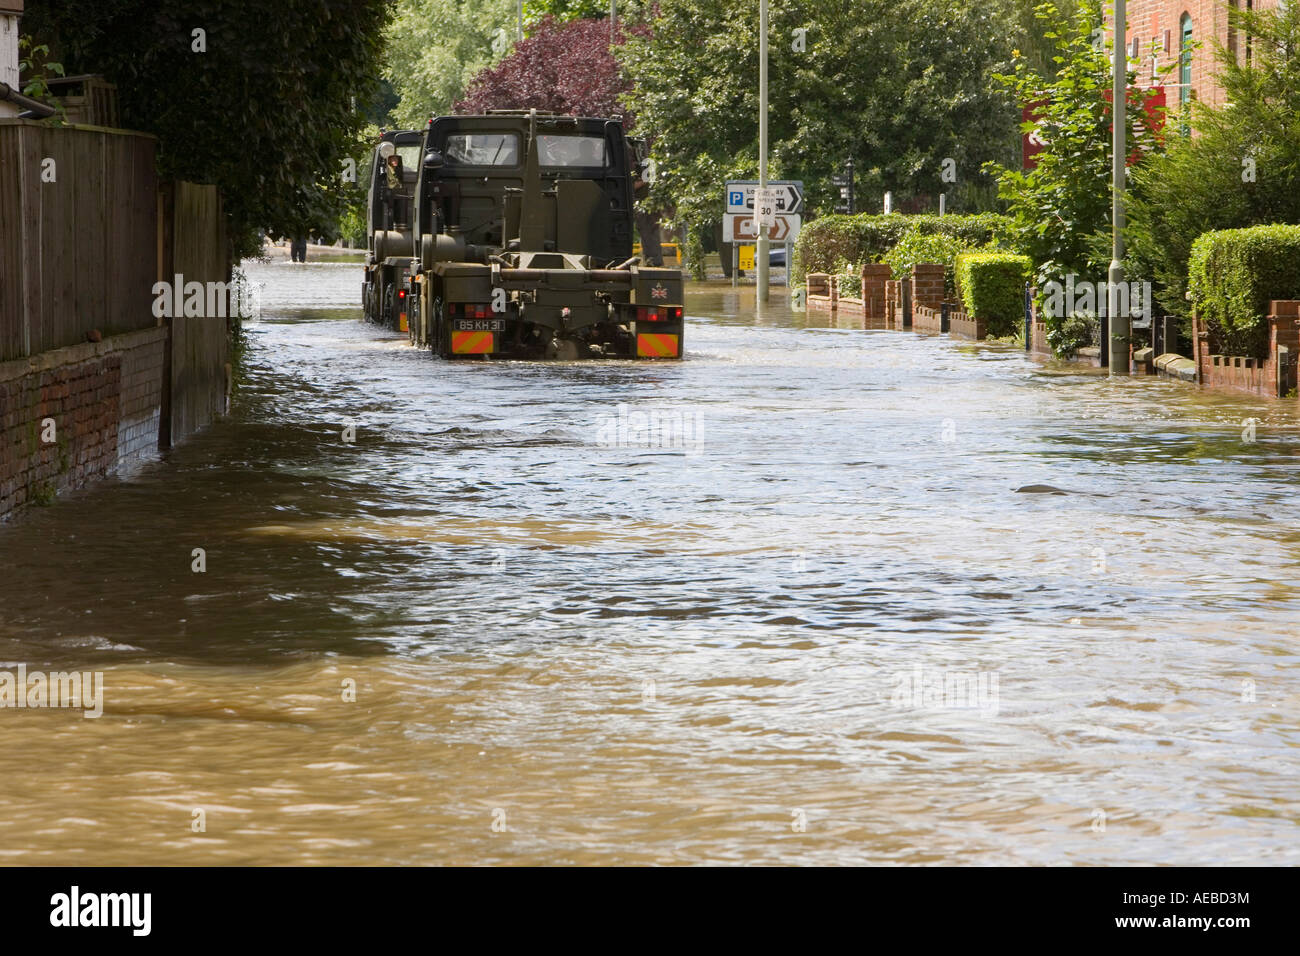 A van driving through floodwaters in Tewkesbury - Stock Image